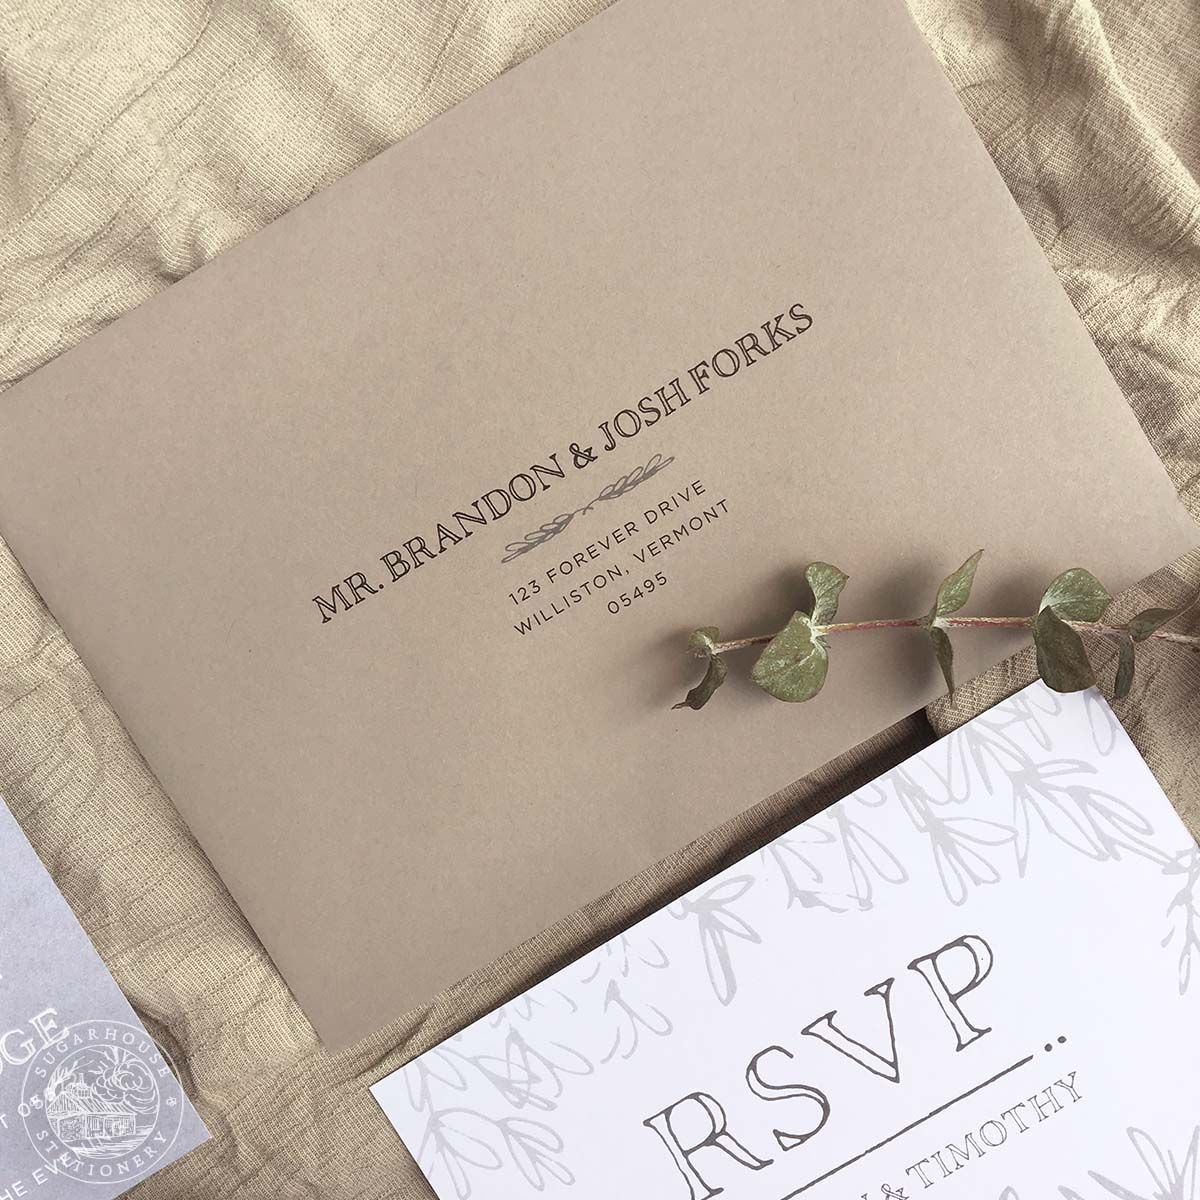 Mansfield grade a invitation suite stationery designs inspired by wedding invitation design company specializing in invitation suites save the dates day of pieces and custom stationery design services stopboris Images